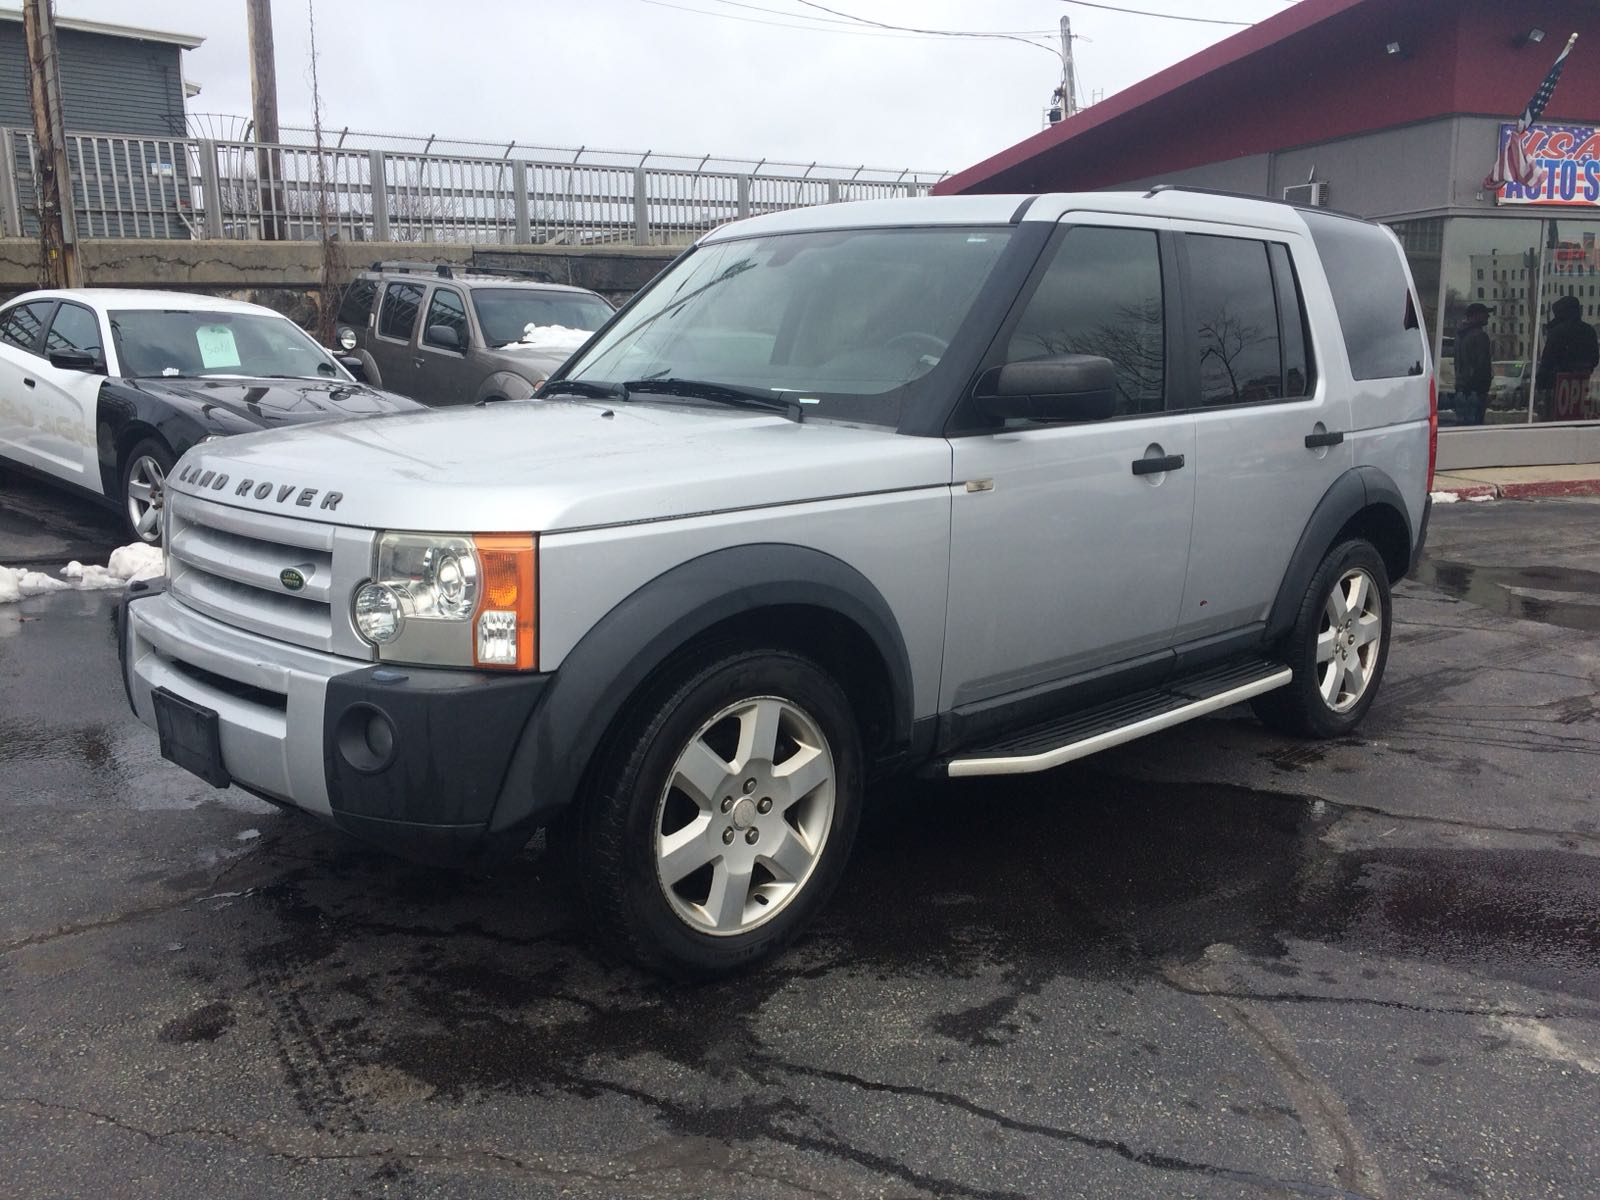 in of cert for carfinder rover online view lot copart auto title angle auctions en ia moines land on des black salvage hse landrover sale